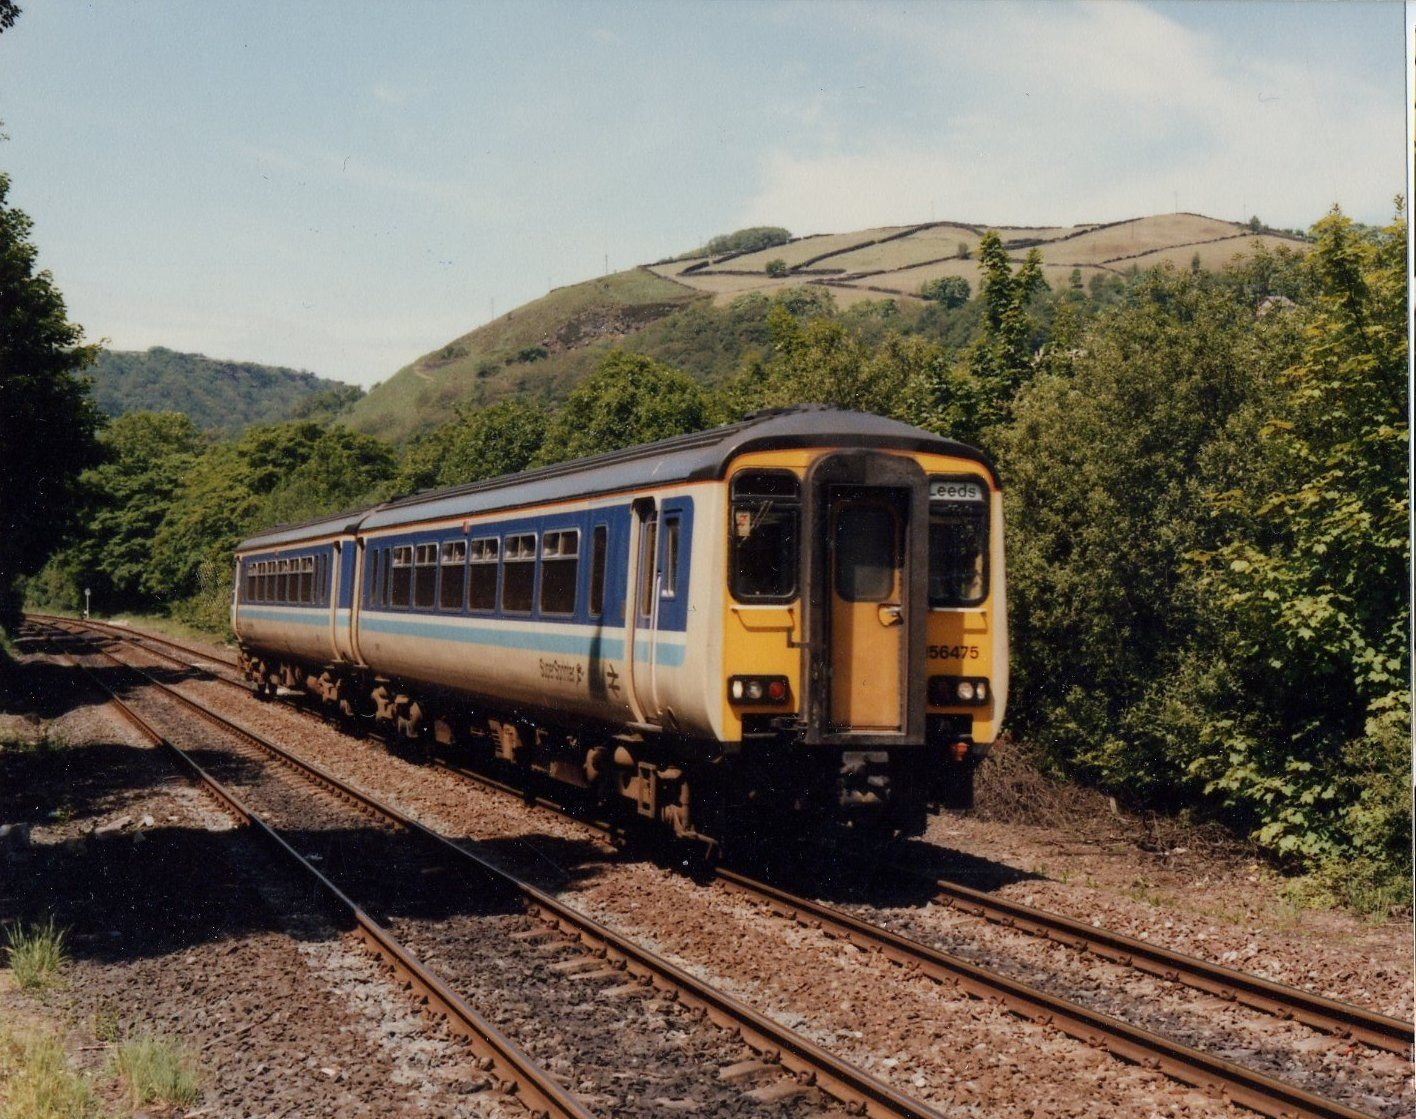 Image showing 156475 somewhere in the Pennines